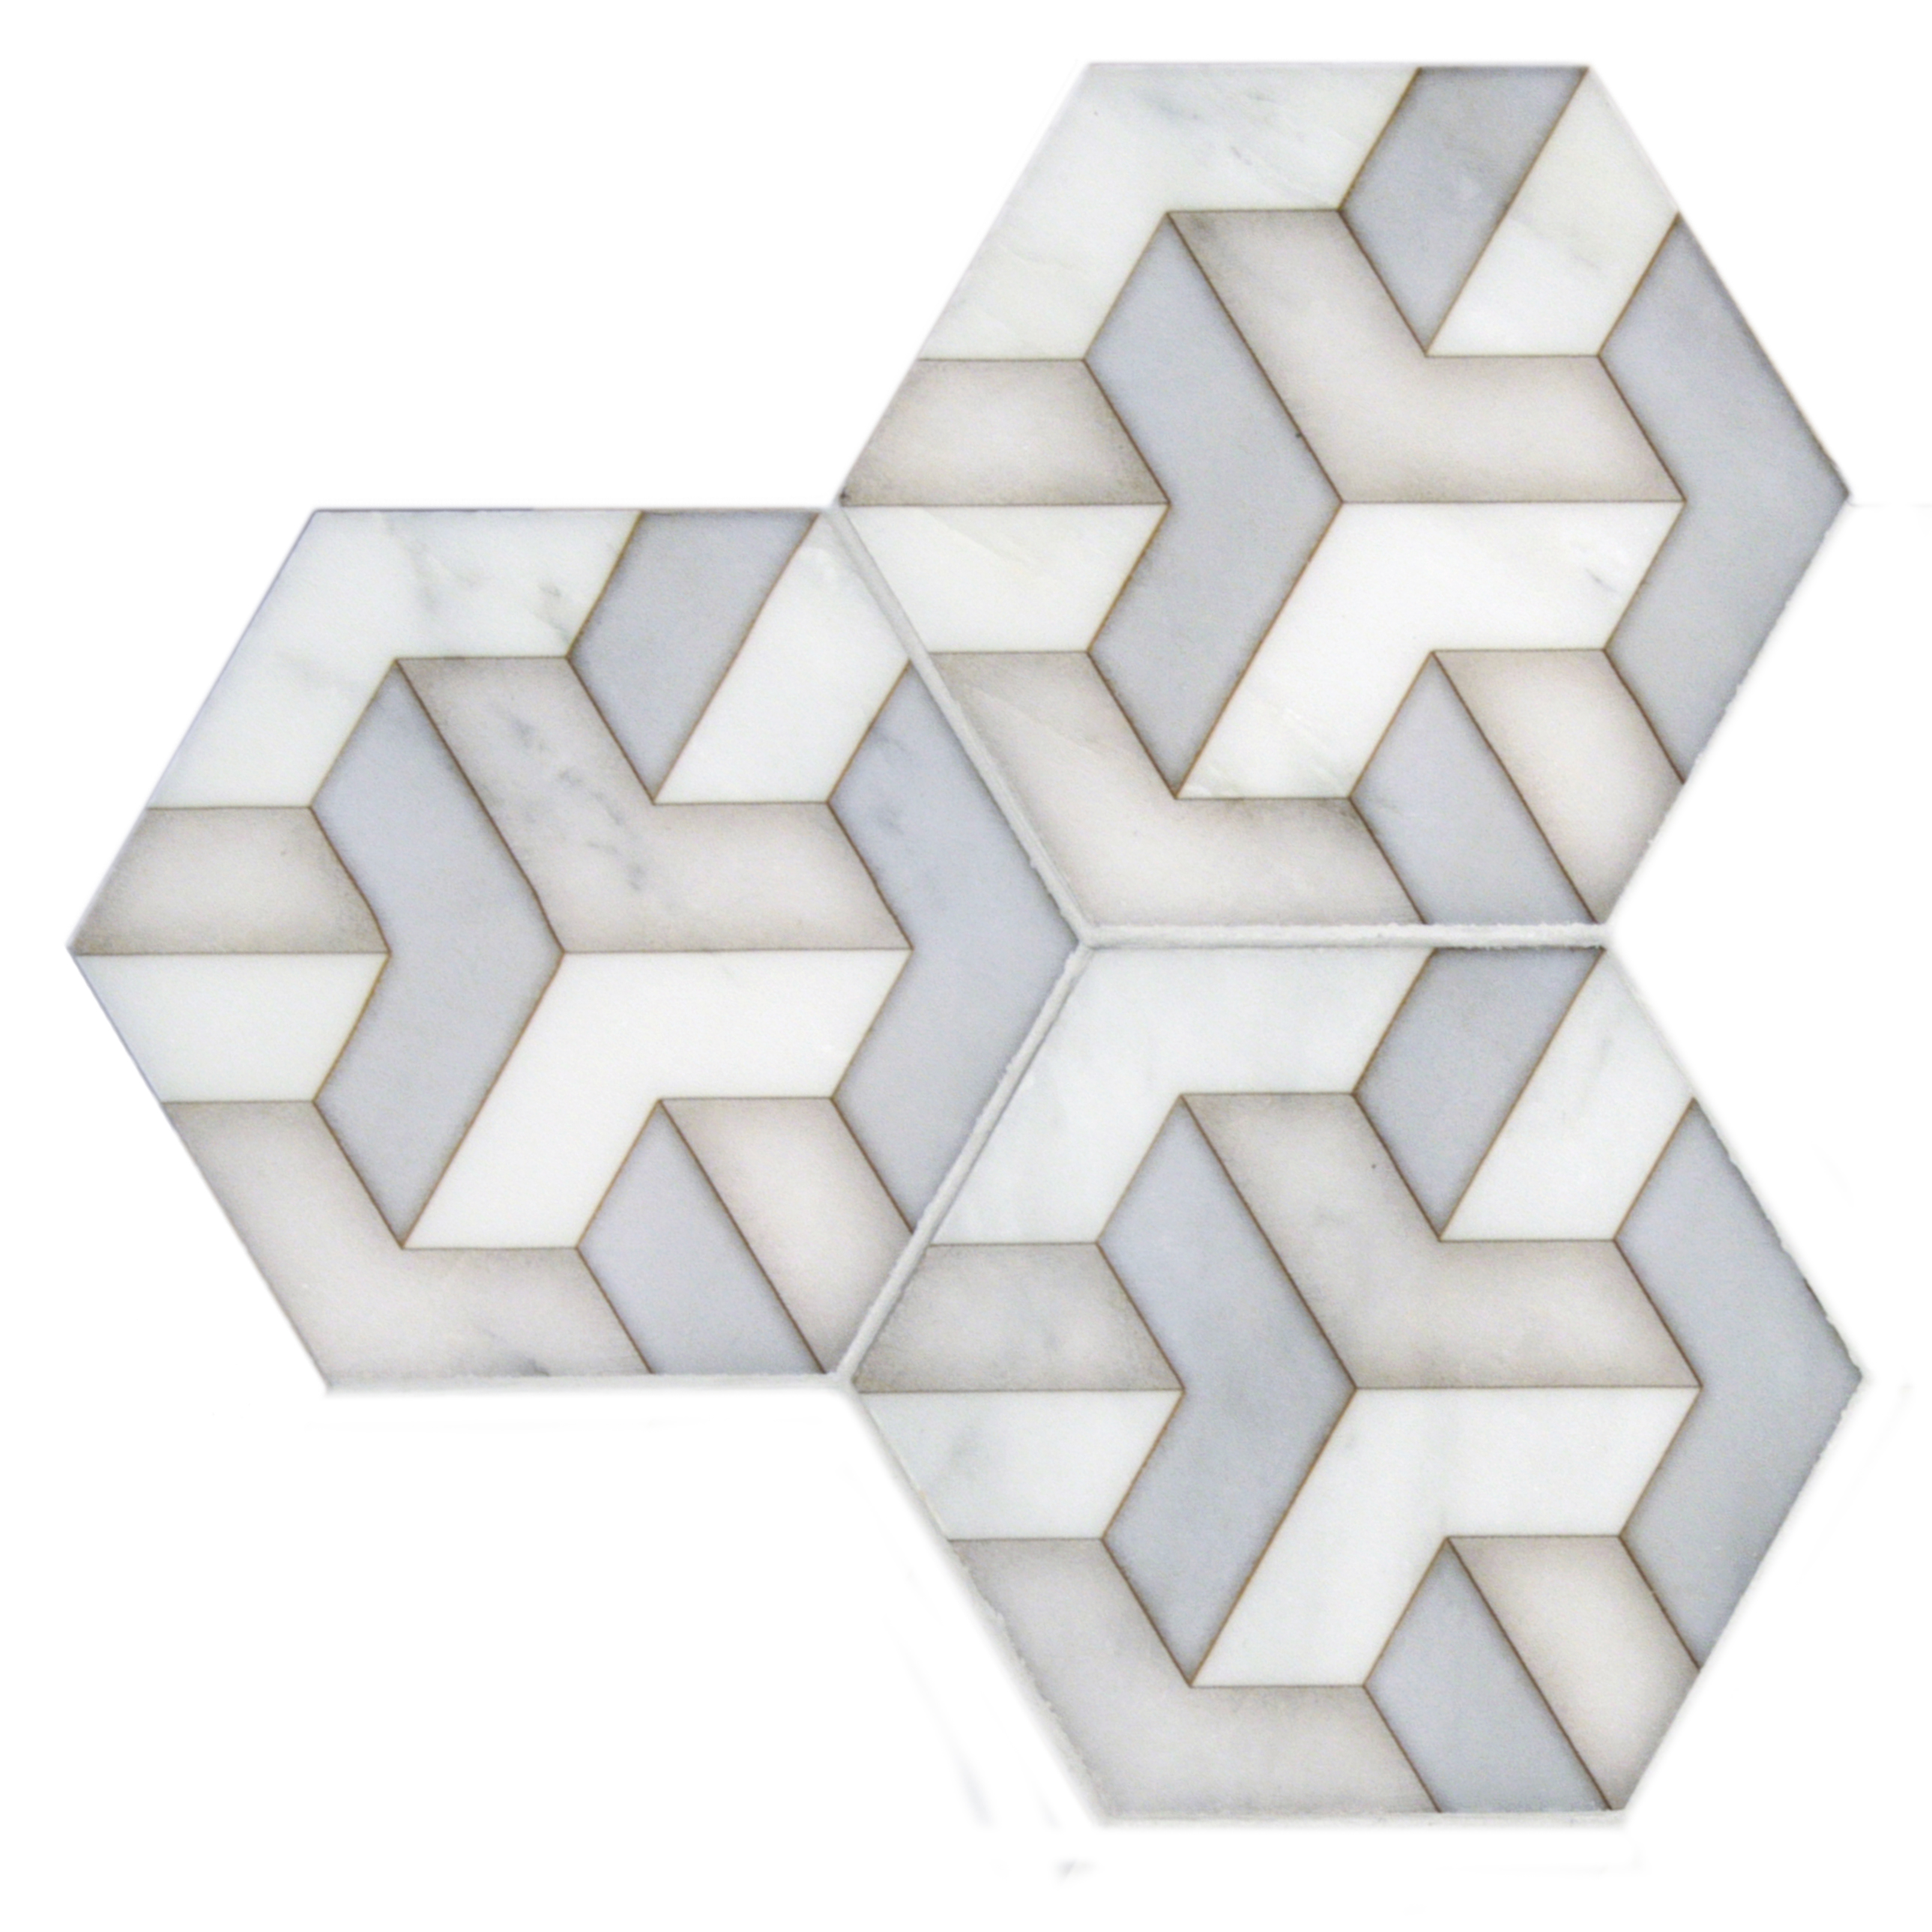 unique marble hexagon tiles for vanity backsplash shower wall tile stove top